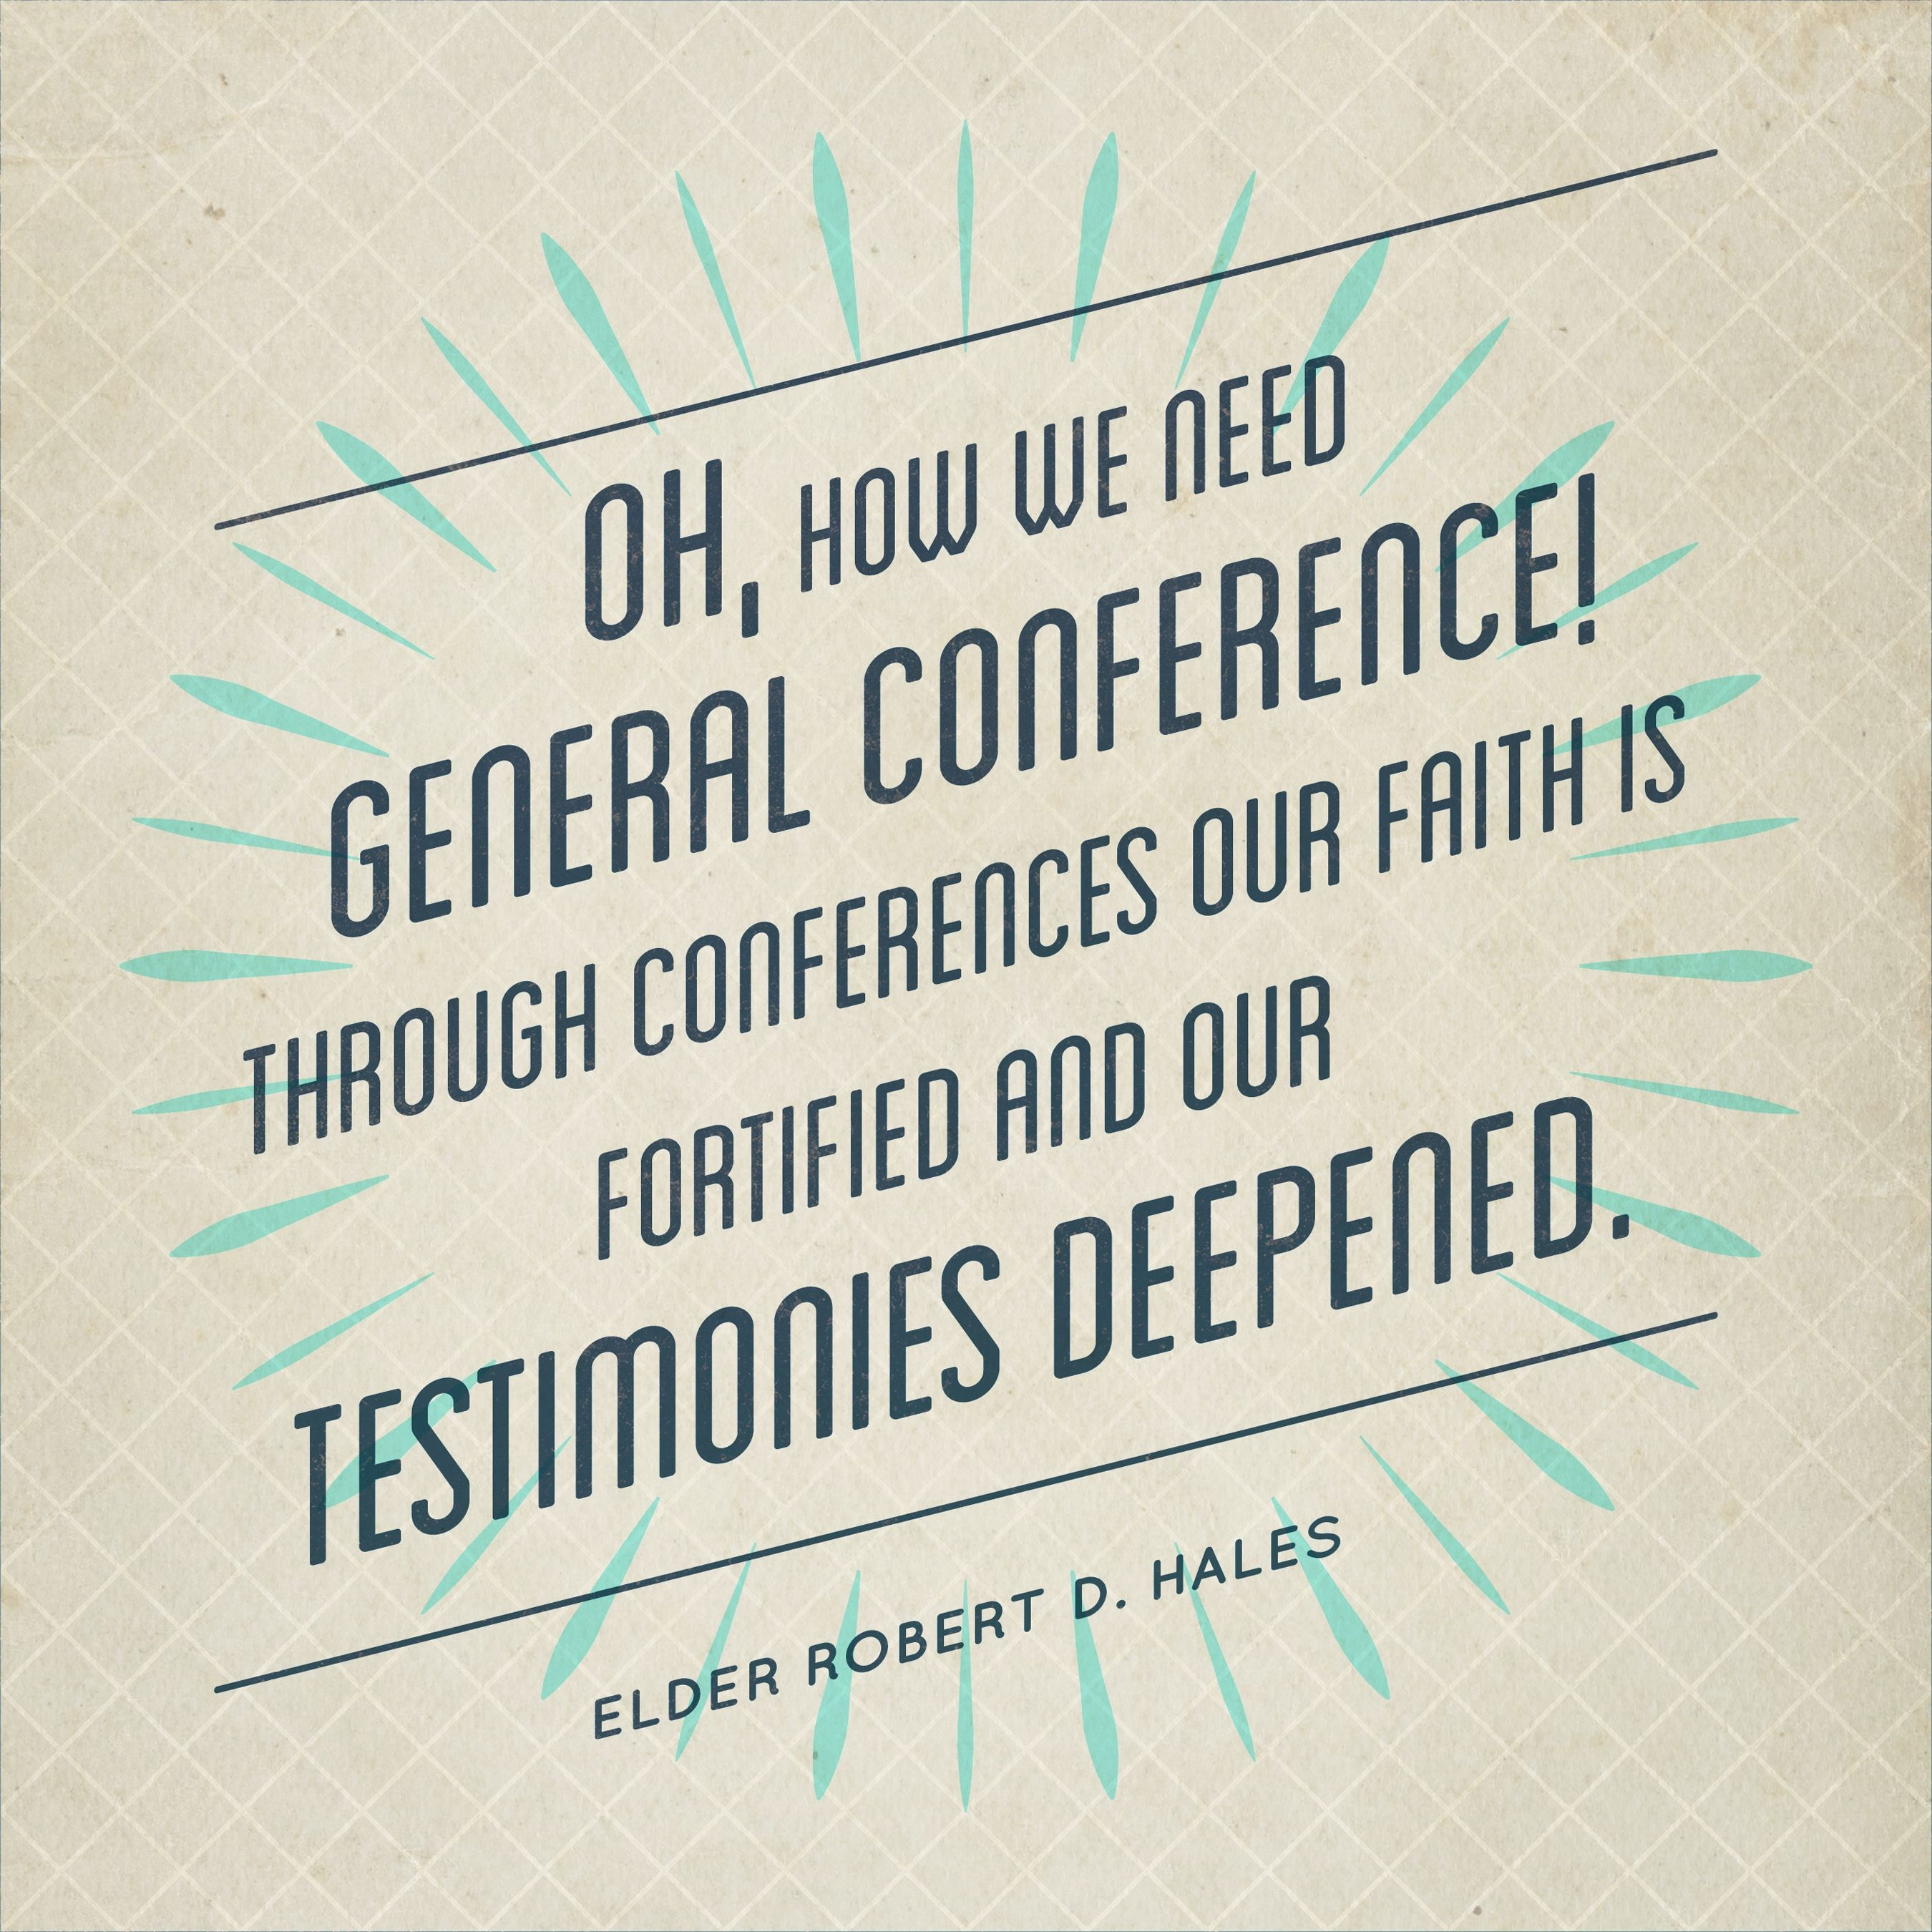 """""""Oh, how we need general conference! Through conferences our faith is fortified and our testimonies deepened.""""—Elder Robert D. Hales, """"General Conference: Strengthening Faith and Testimony"""""""